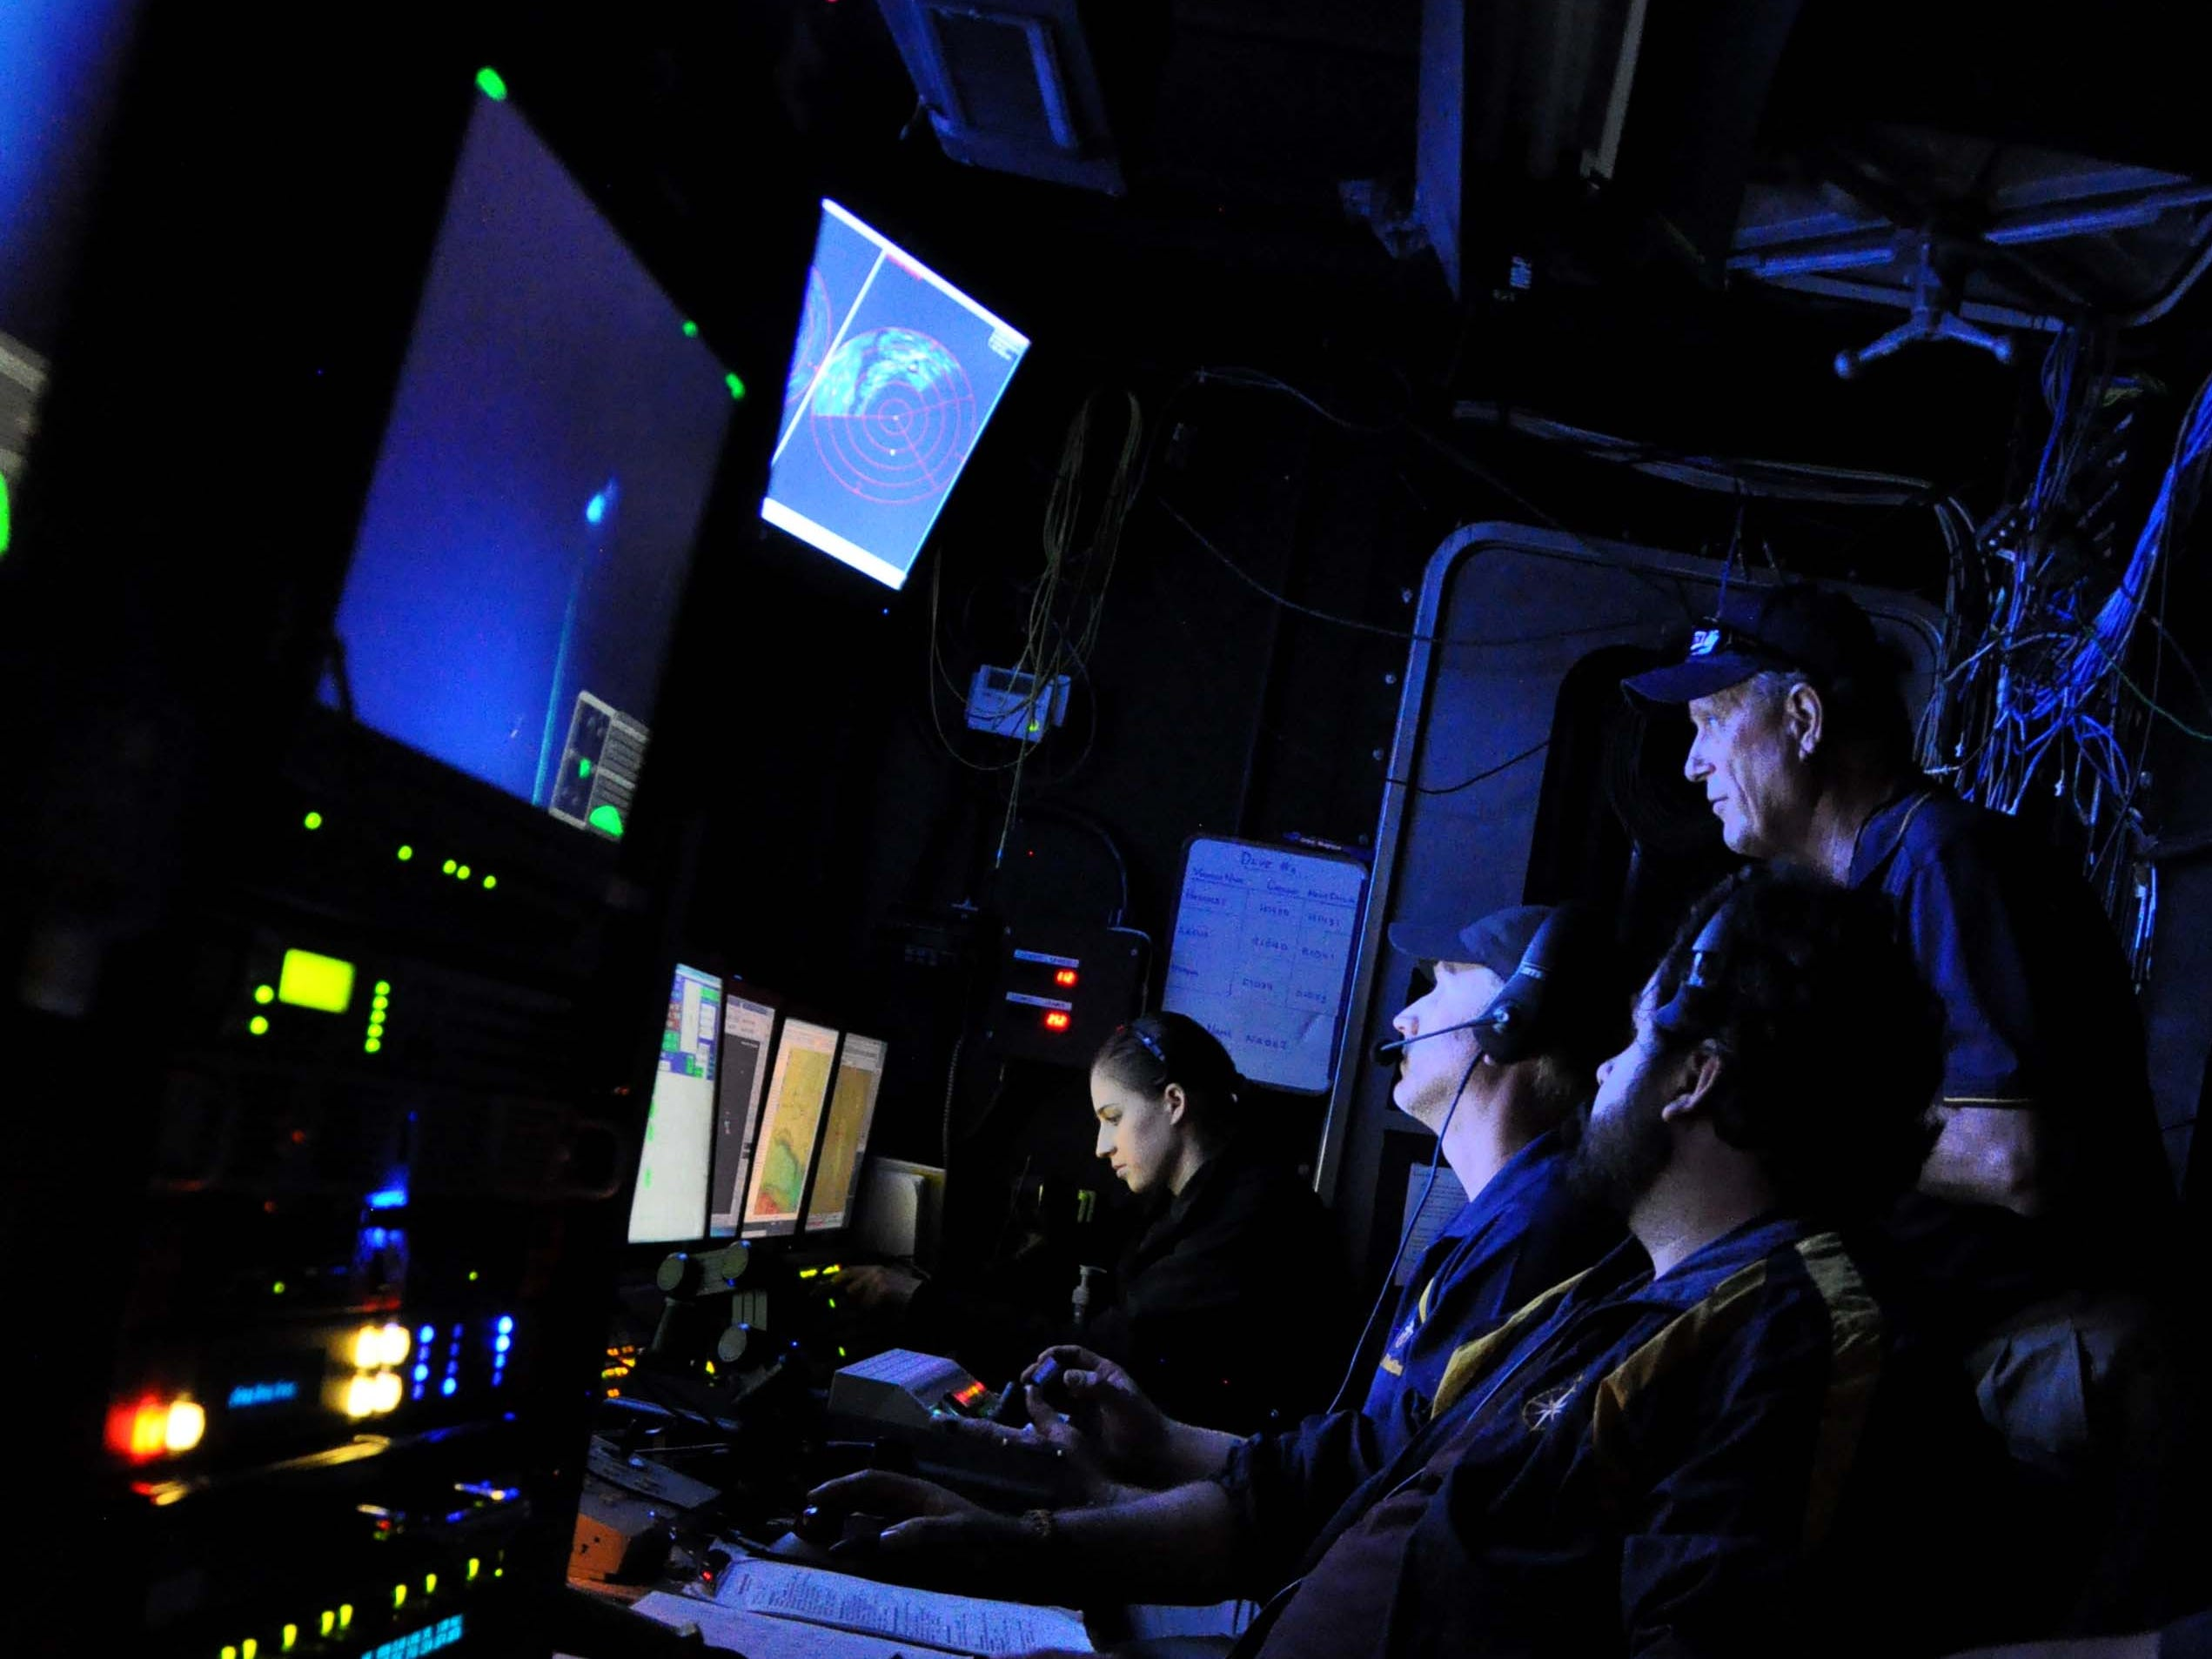 Melissa Baffa's view from her station in the control van, where the watch team conducts exploration. Looking down the line, the ROV pilots and navigator are visible, with Dr. Robert Ballard standing behind them. This 2015 photo shows Ballard's first return to the hydrothermal vents he discovered, 38 years later.